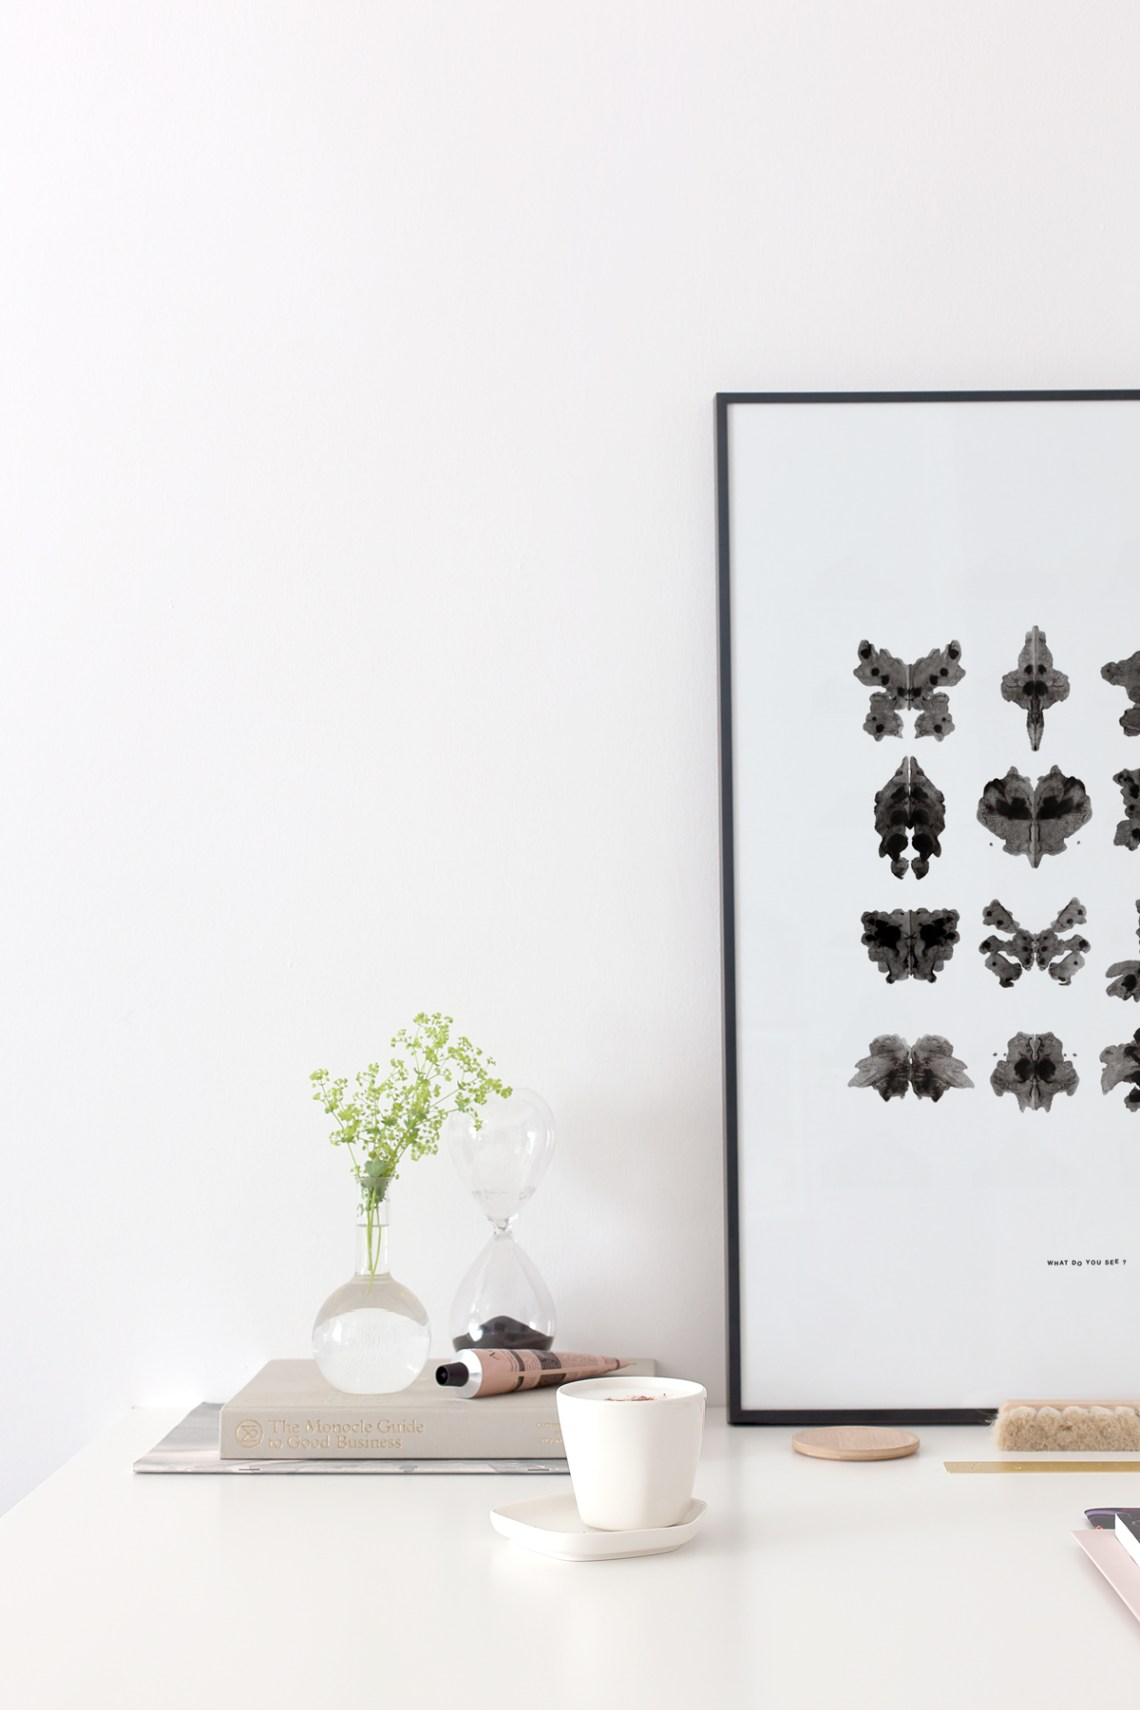 New print in the shop: What do you see ? - cocolapine.bigcartel.com